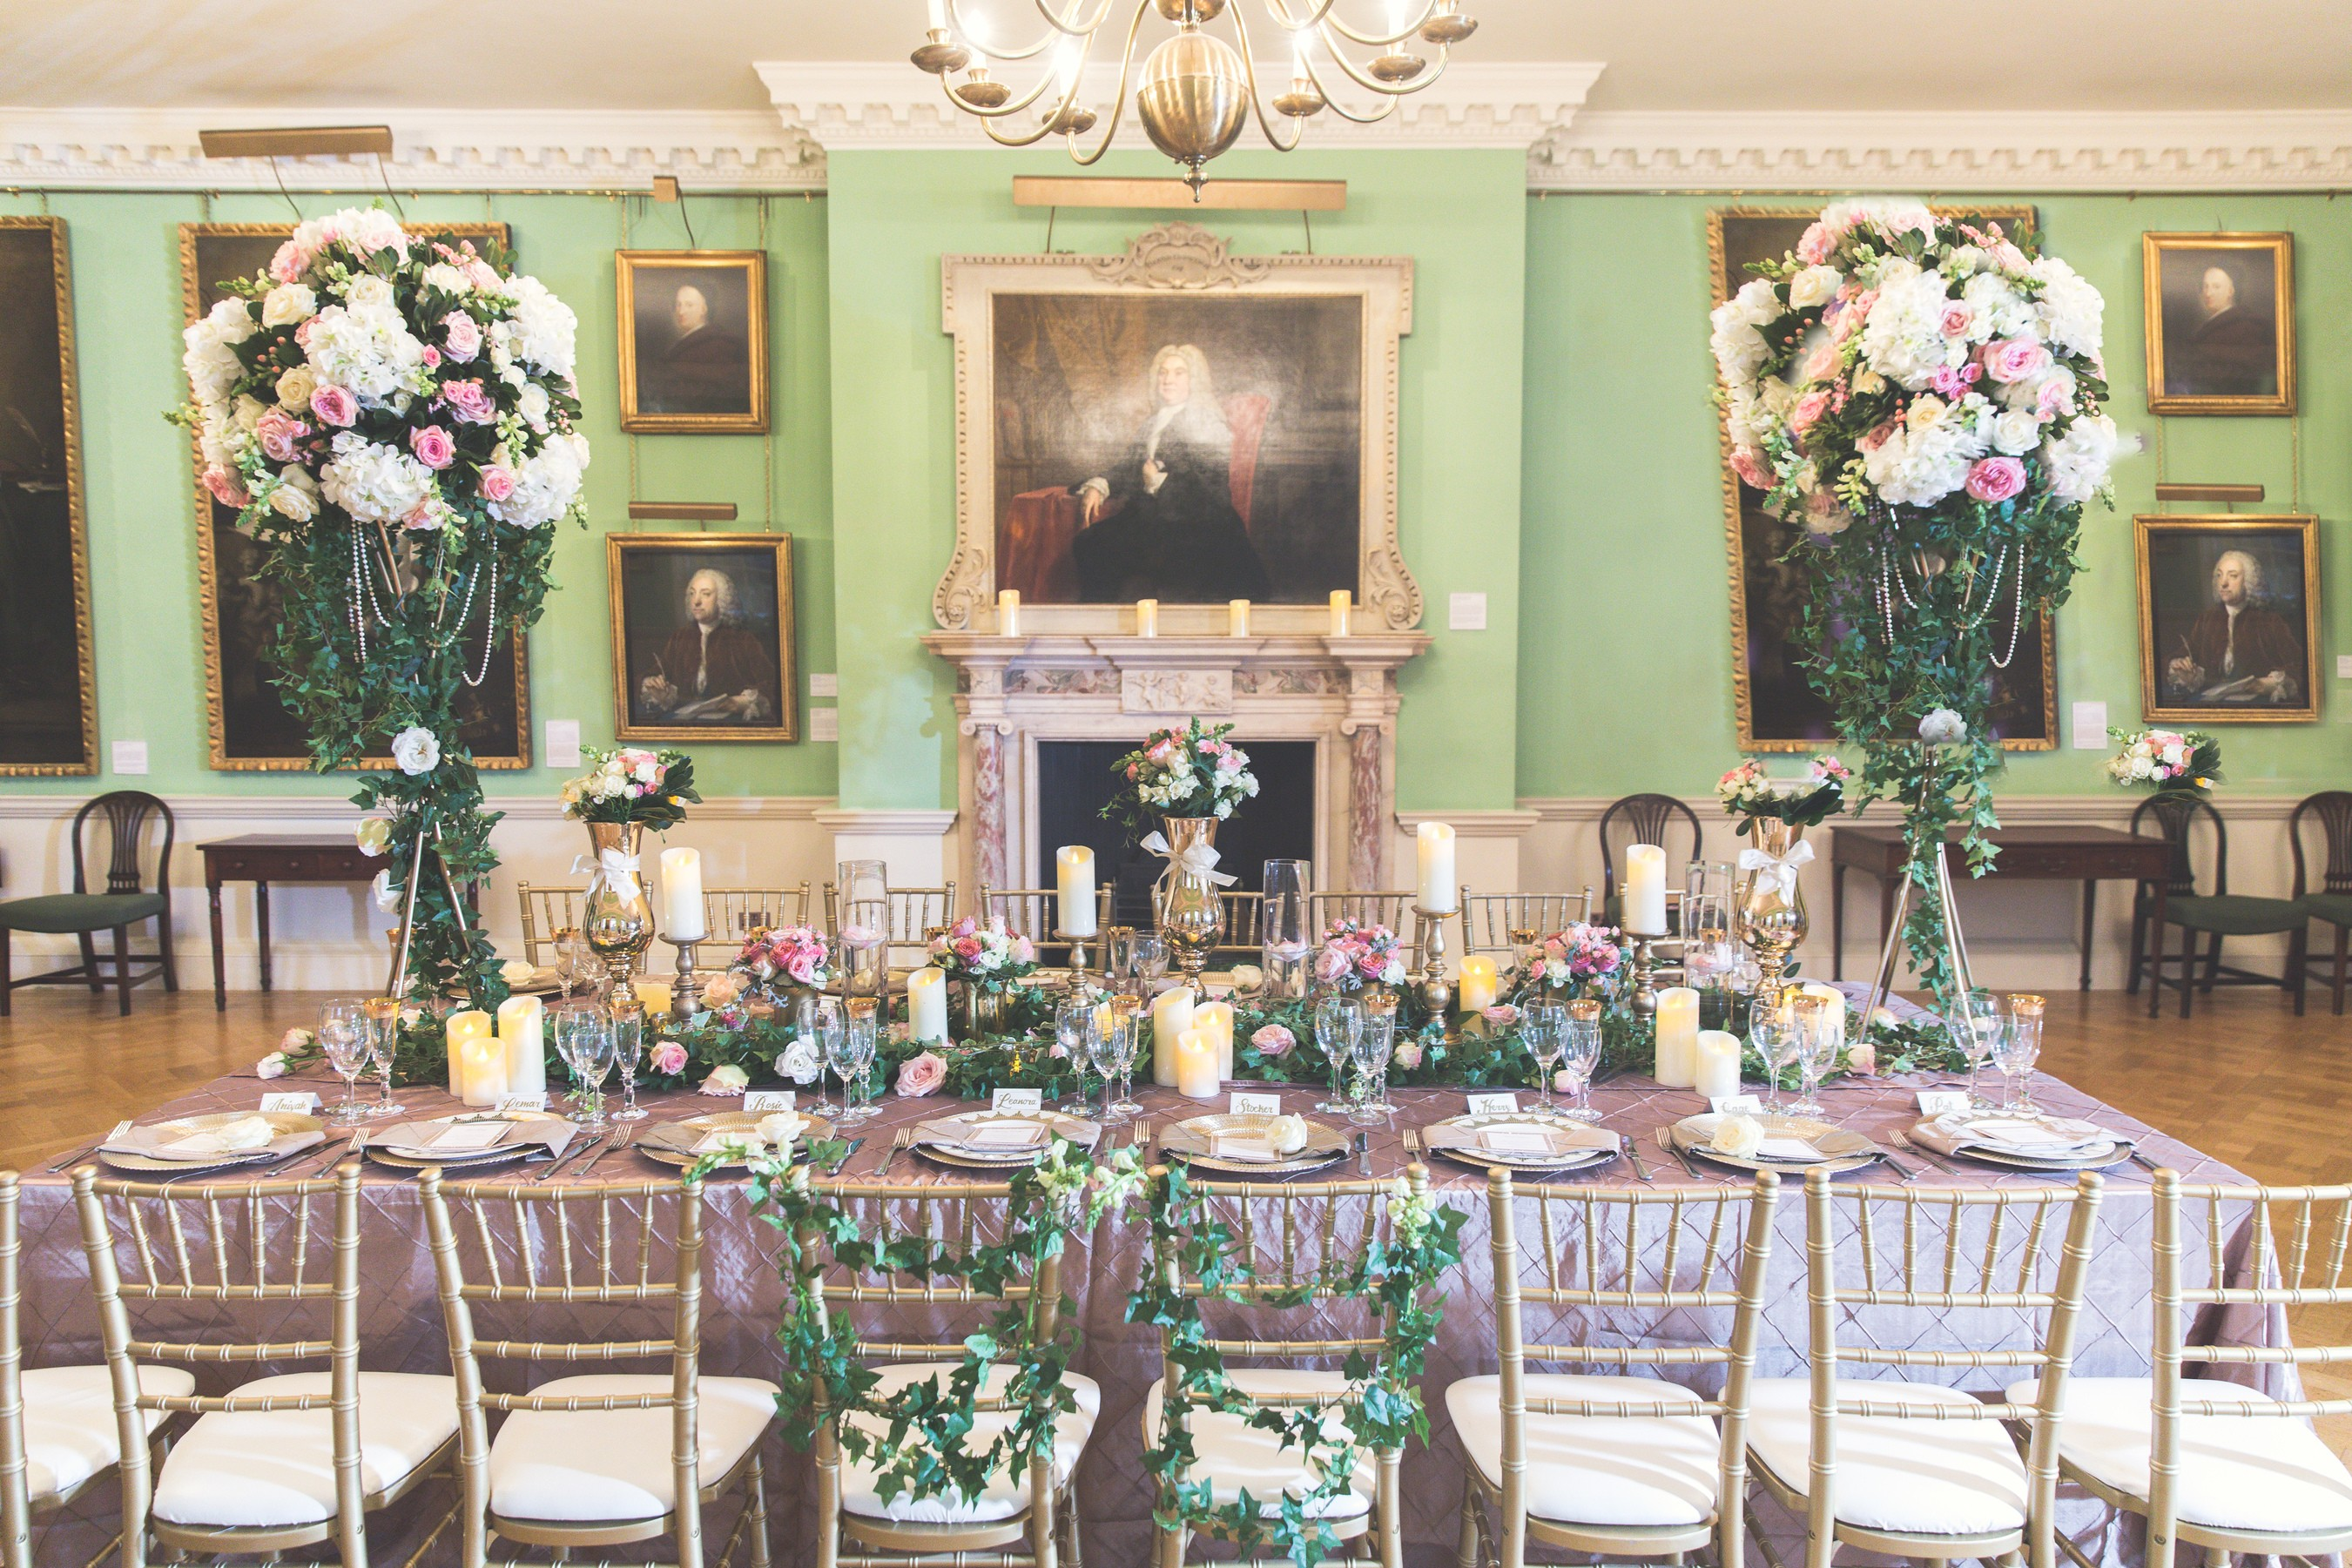 wedding inspiration, wedding ideas, wedding style, downton abbey, downton wedding